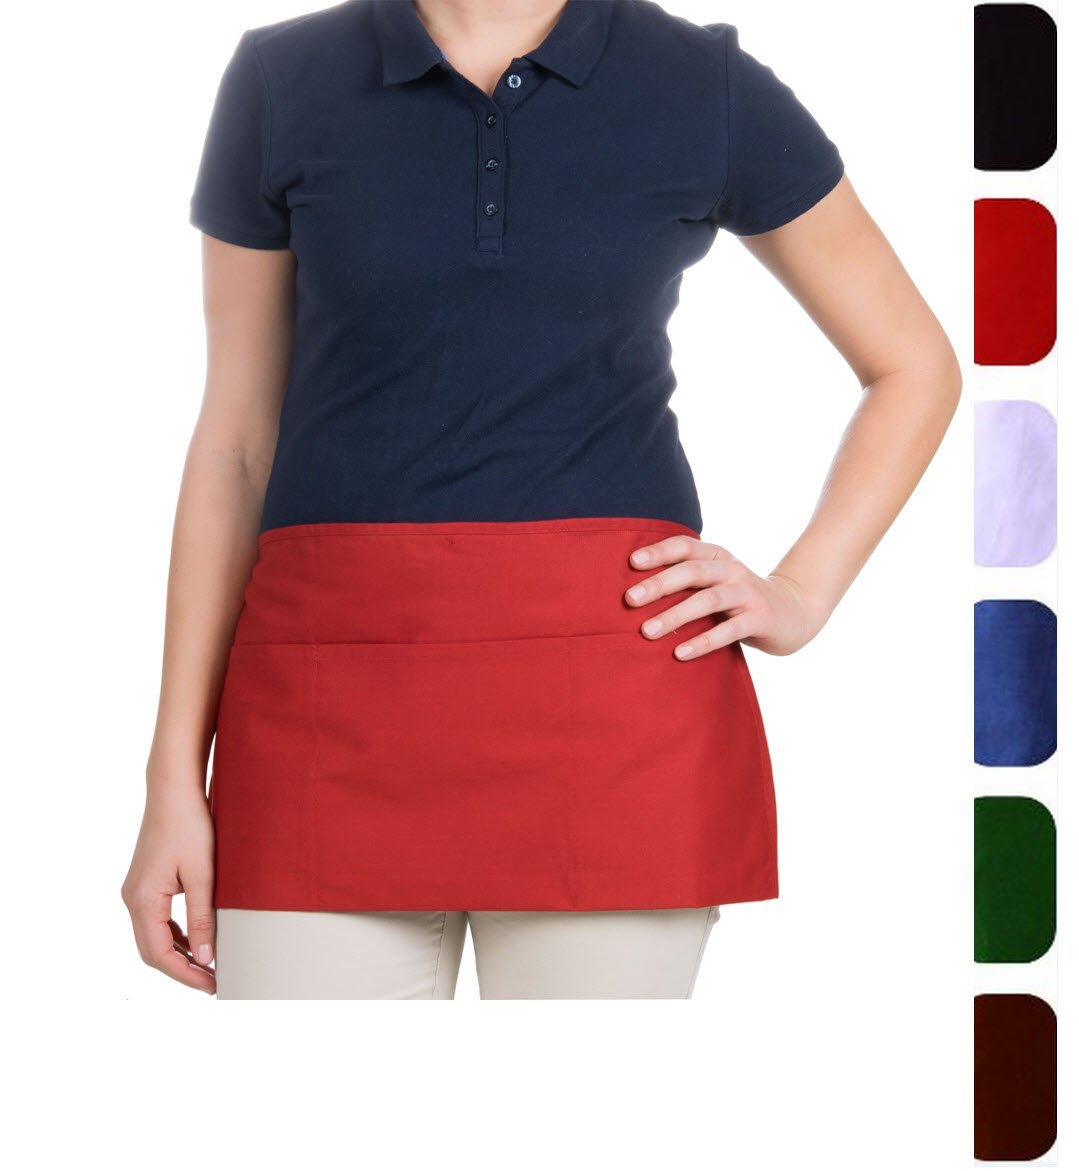 MHF Aprons-1 Piece Pack-White Waist/Waitress Apron-Poly Spun for Home/commercial/Restaurant Kitchen